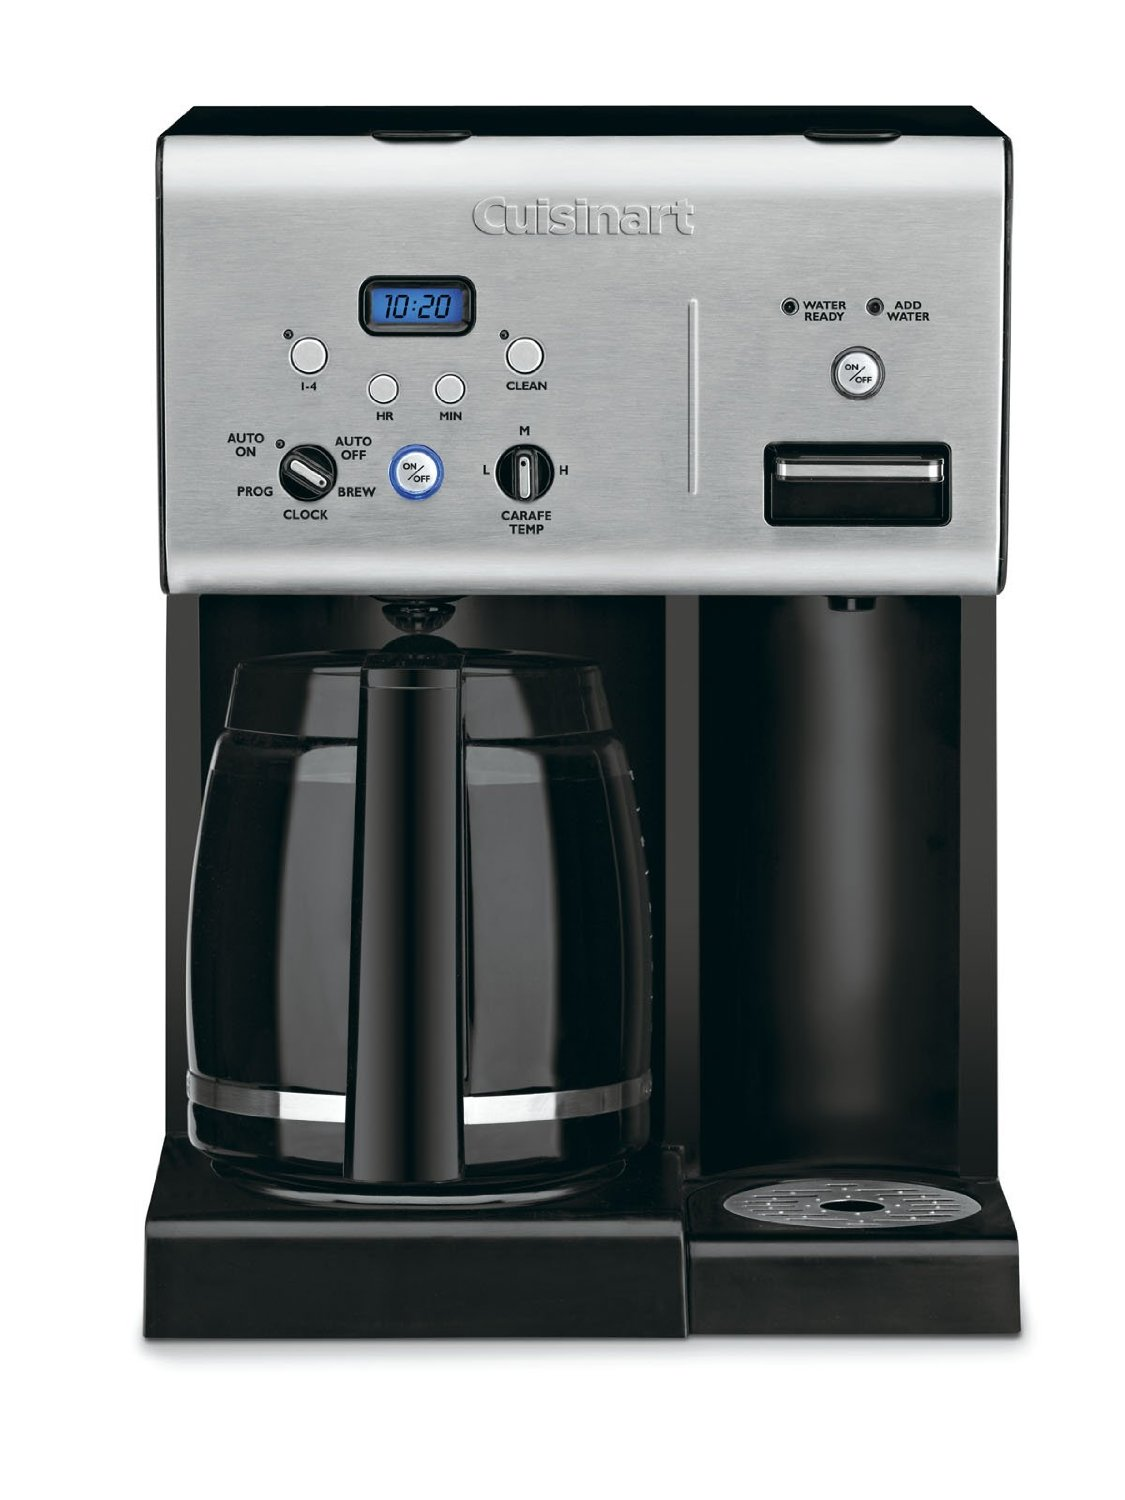 Best Coffee Maker Product ~ Nothing found for best coffee maker